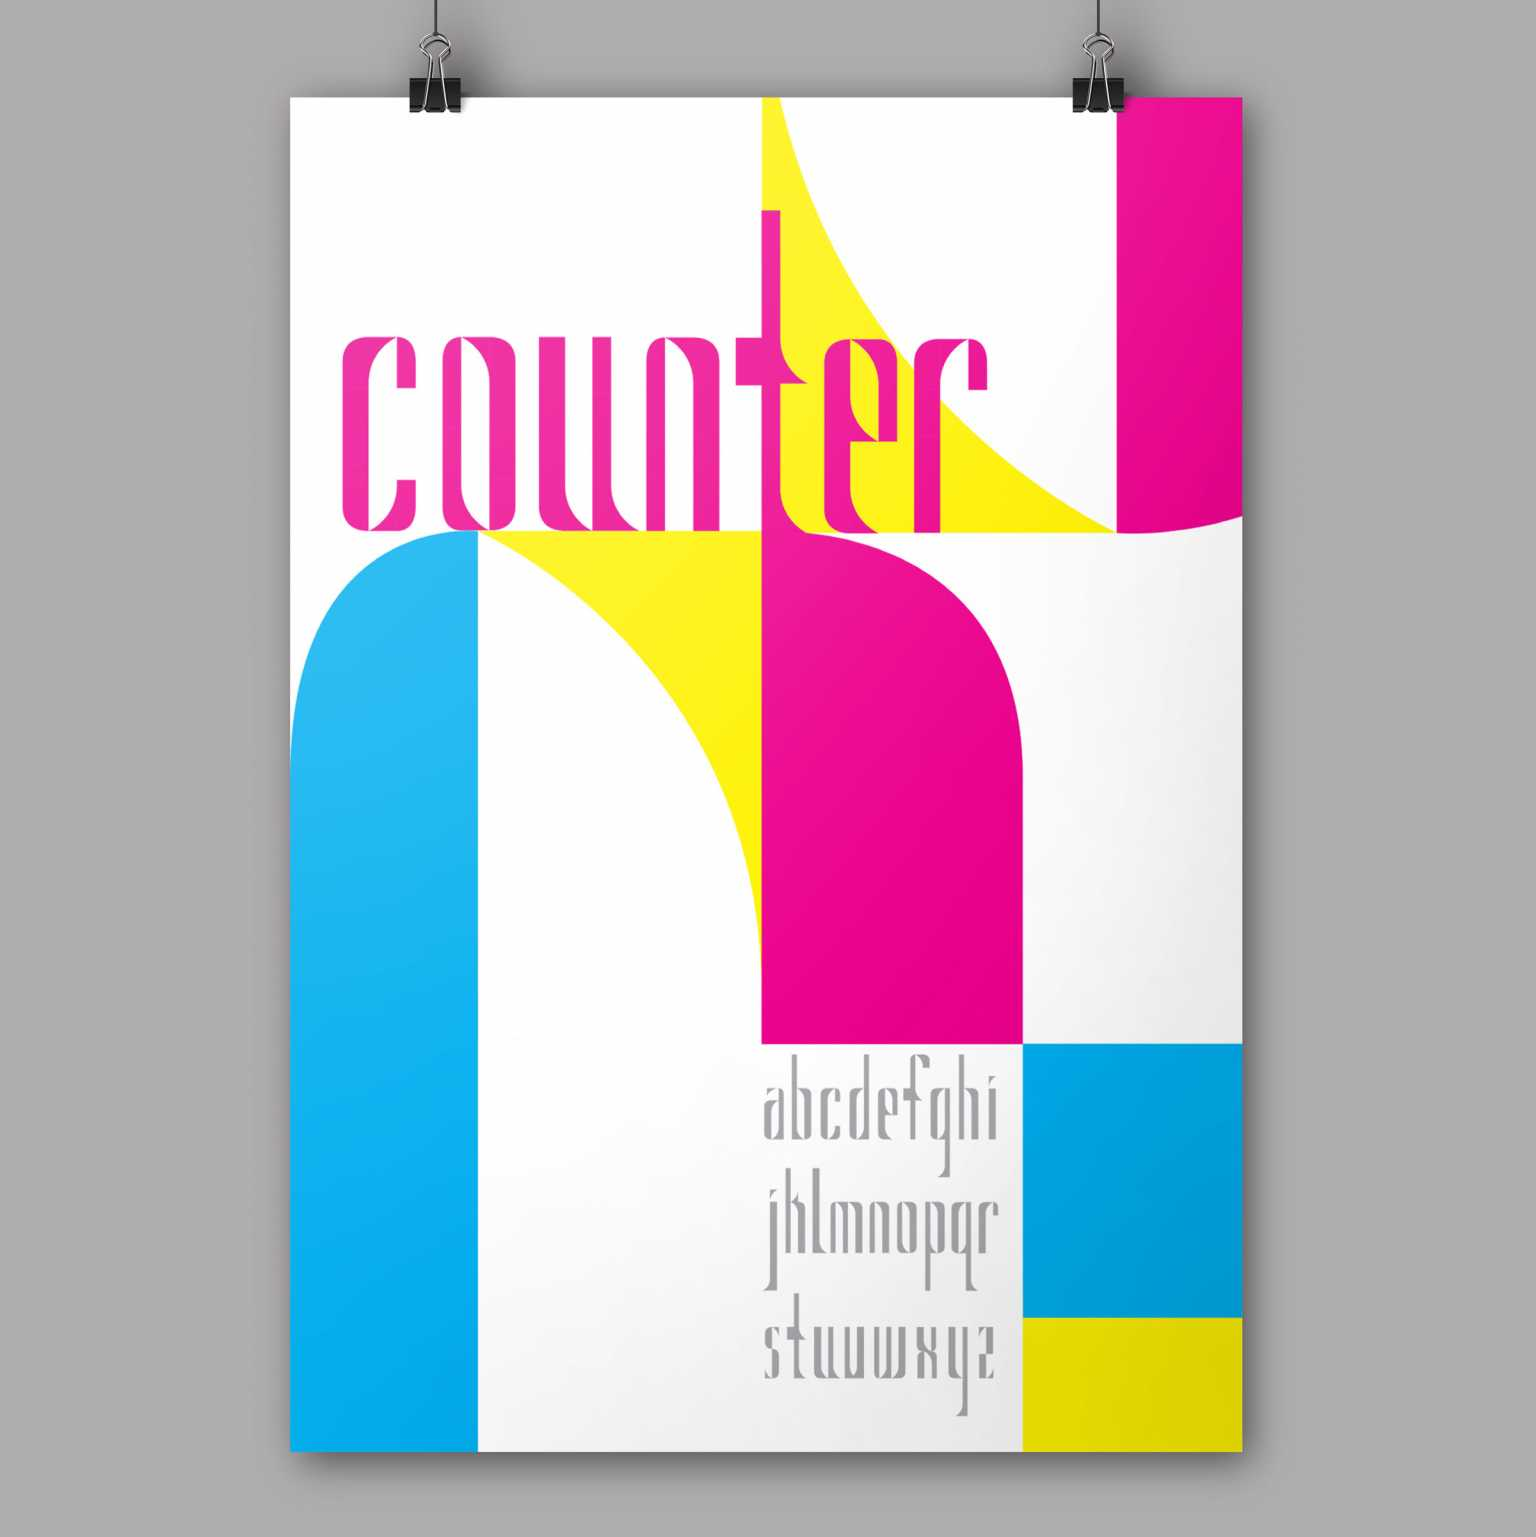 Counter modular typeface